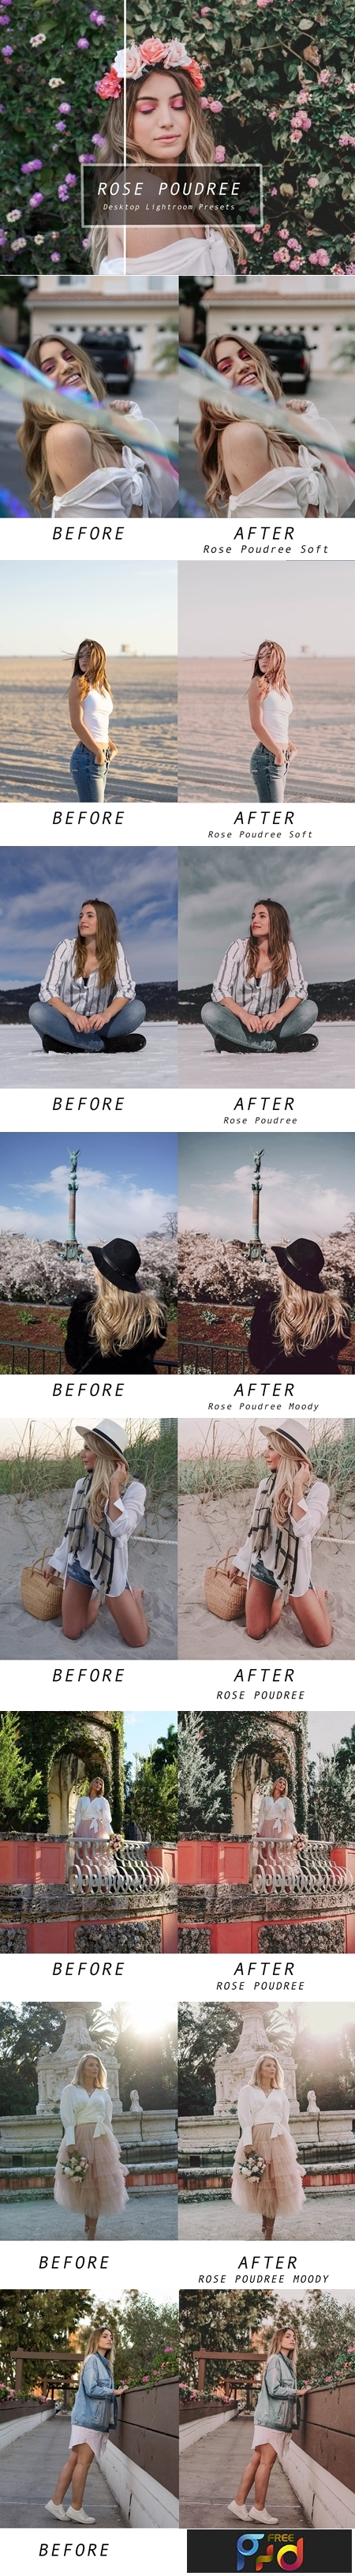 Desktop Lightroom Presets ROSE 3628869 1